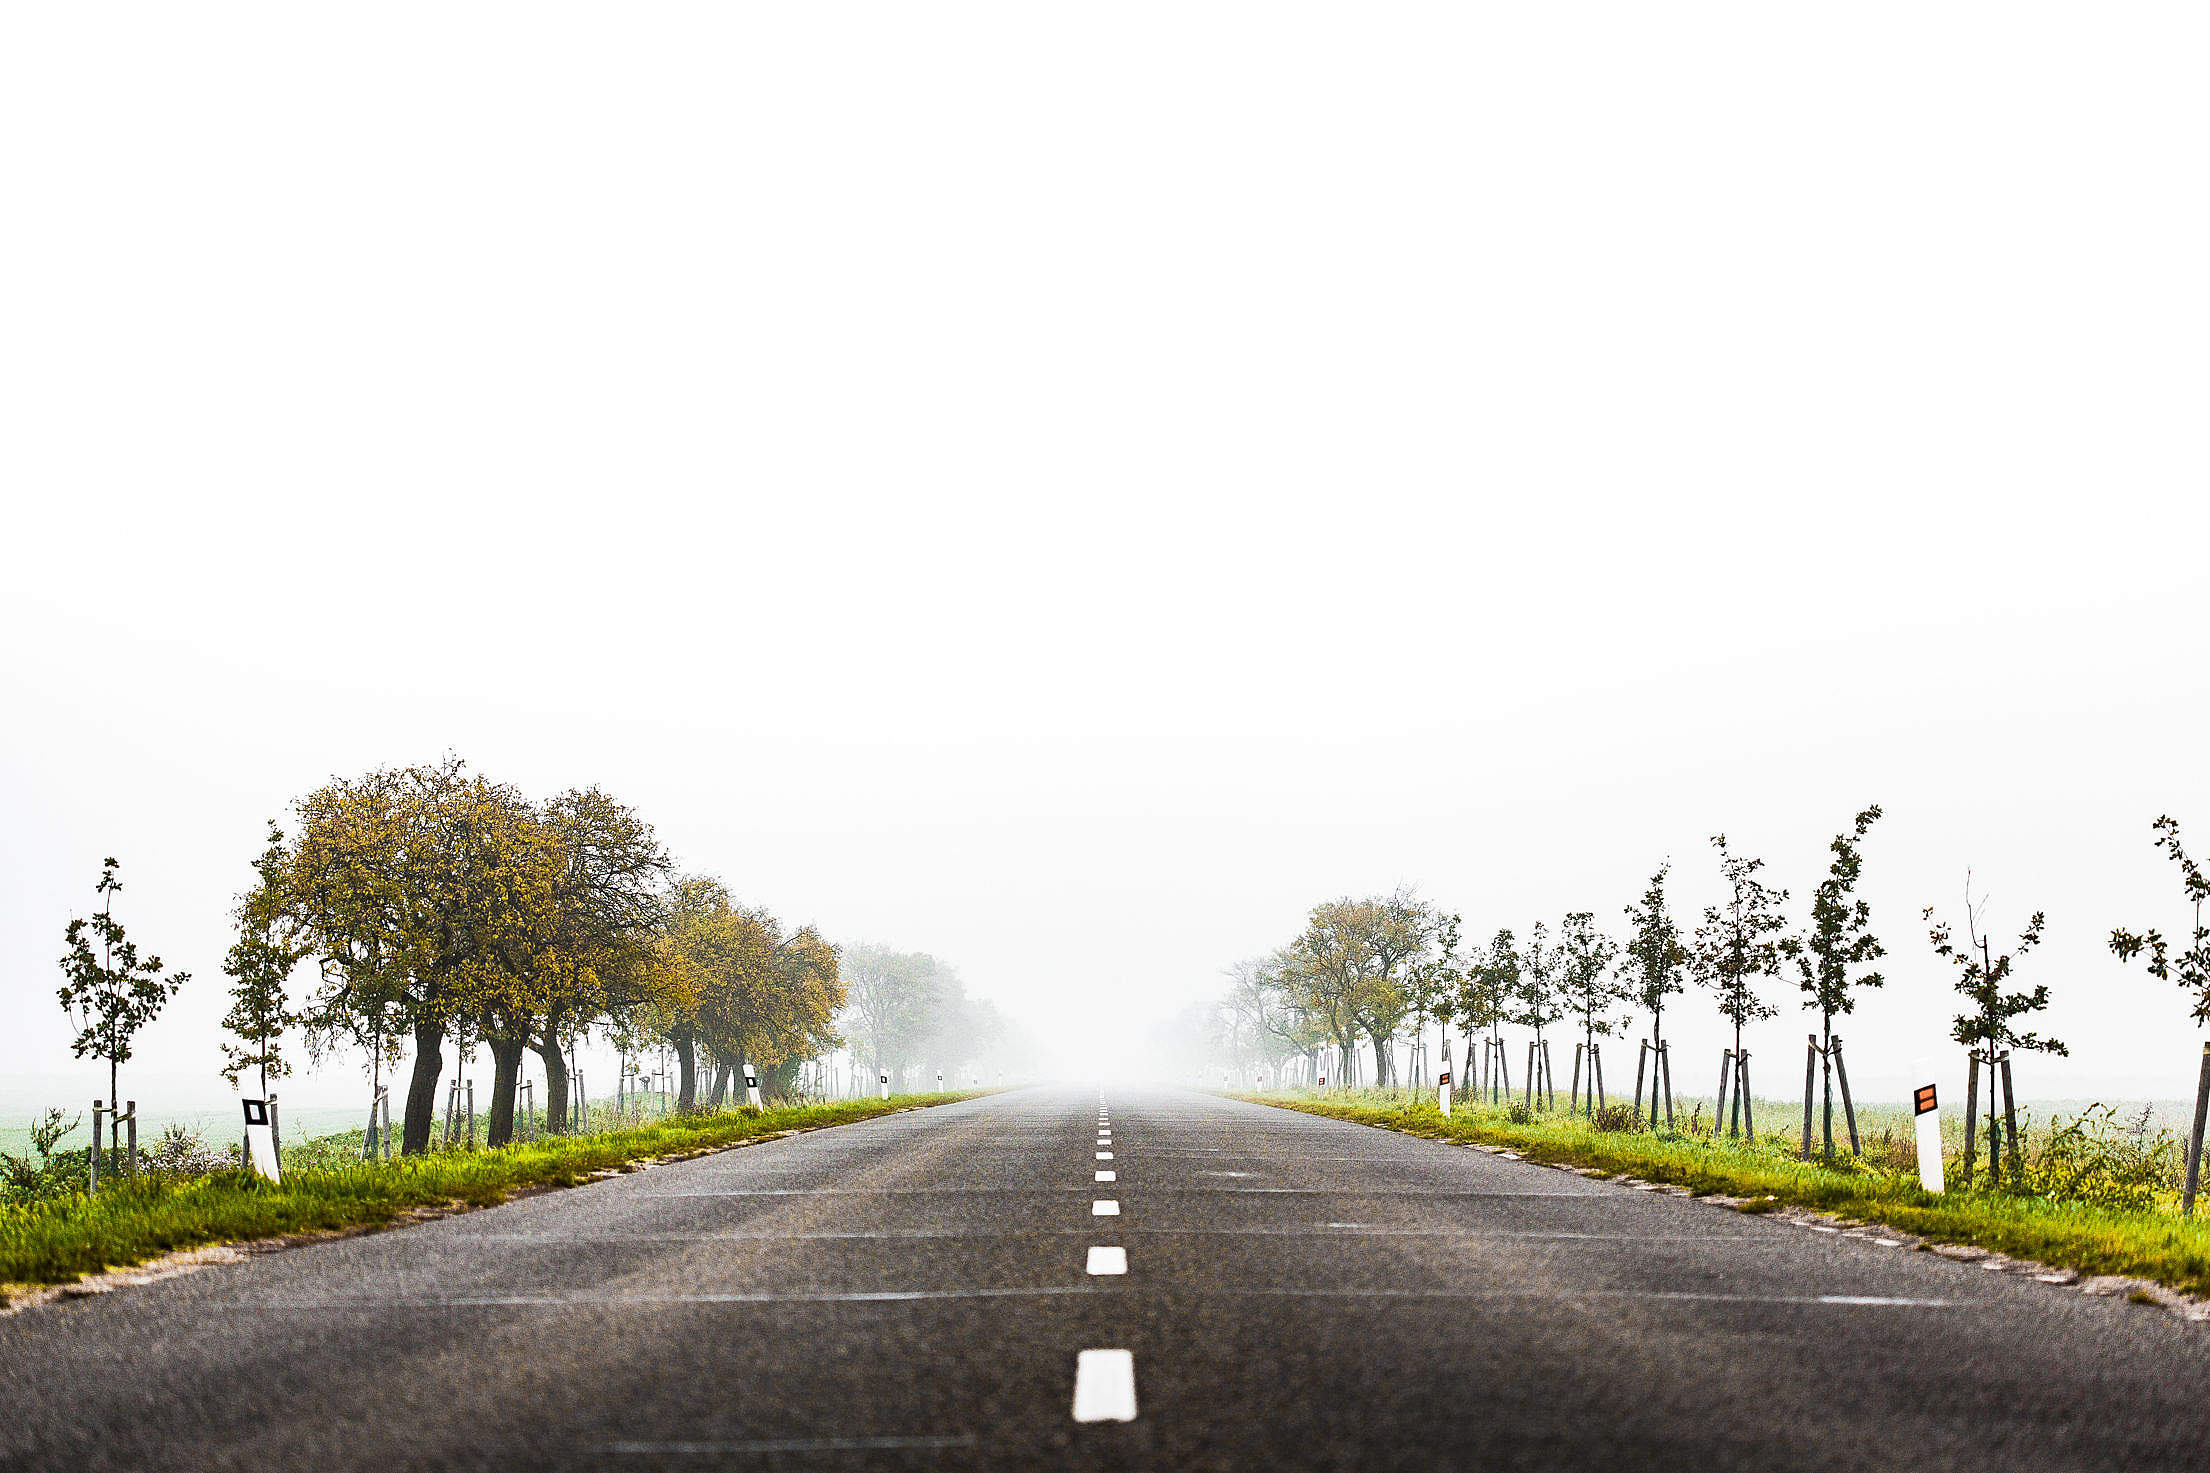 Download Foggy Road to Nowhere Free Stock Photo